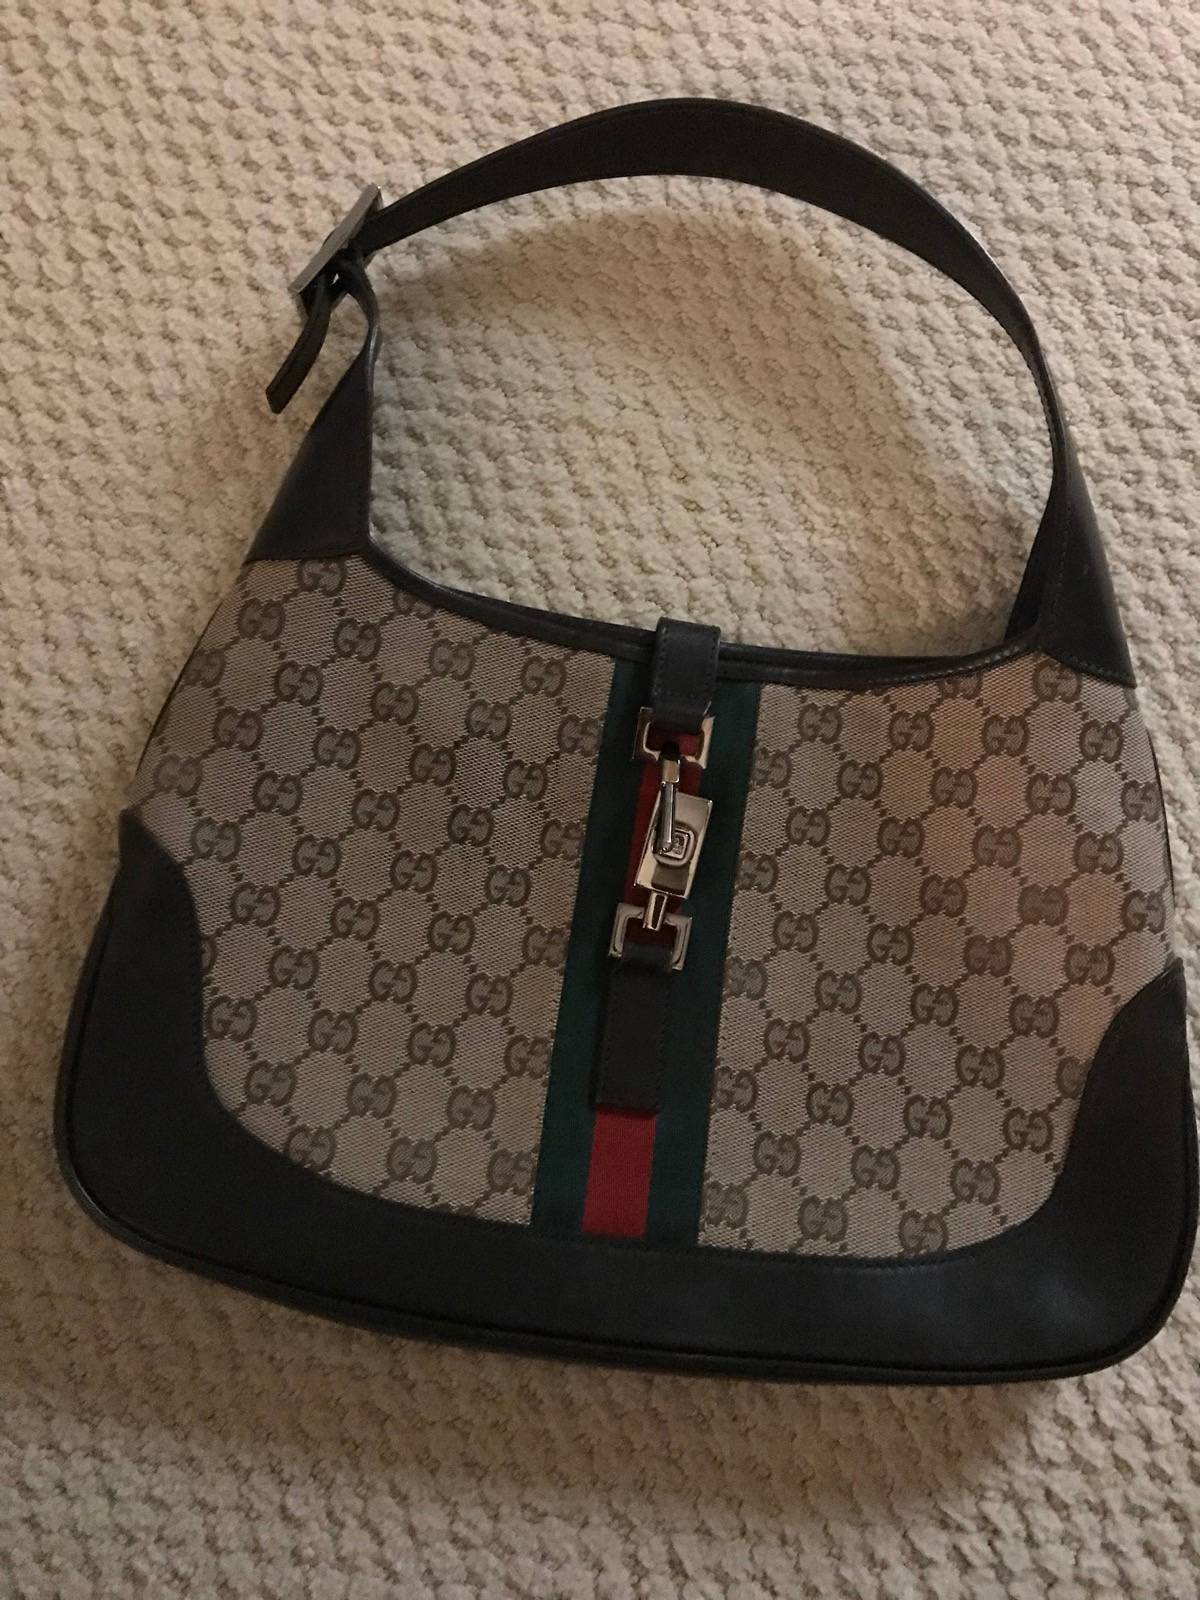 """f4d5a5e9663 Gucci Gucci Beige Ebony Signature """"GG"""" Canvas Jackie O Hobo Bag Size one  size - Bags   Luggage for Sale - Grailed"""